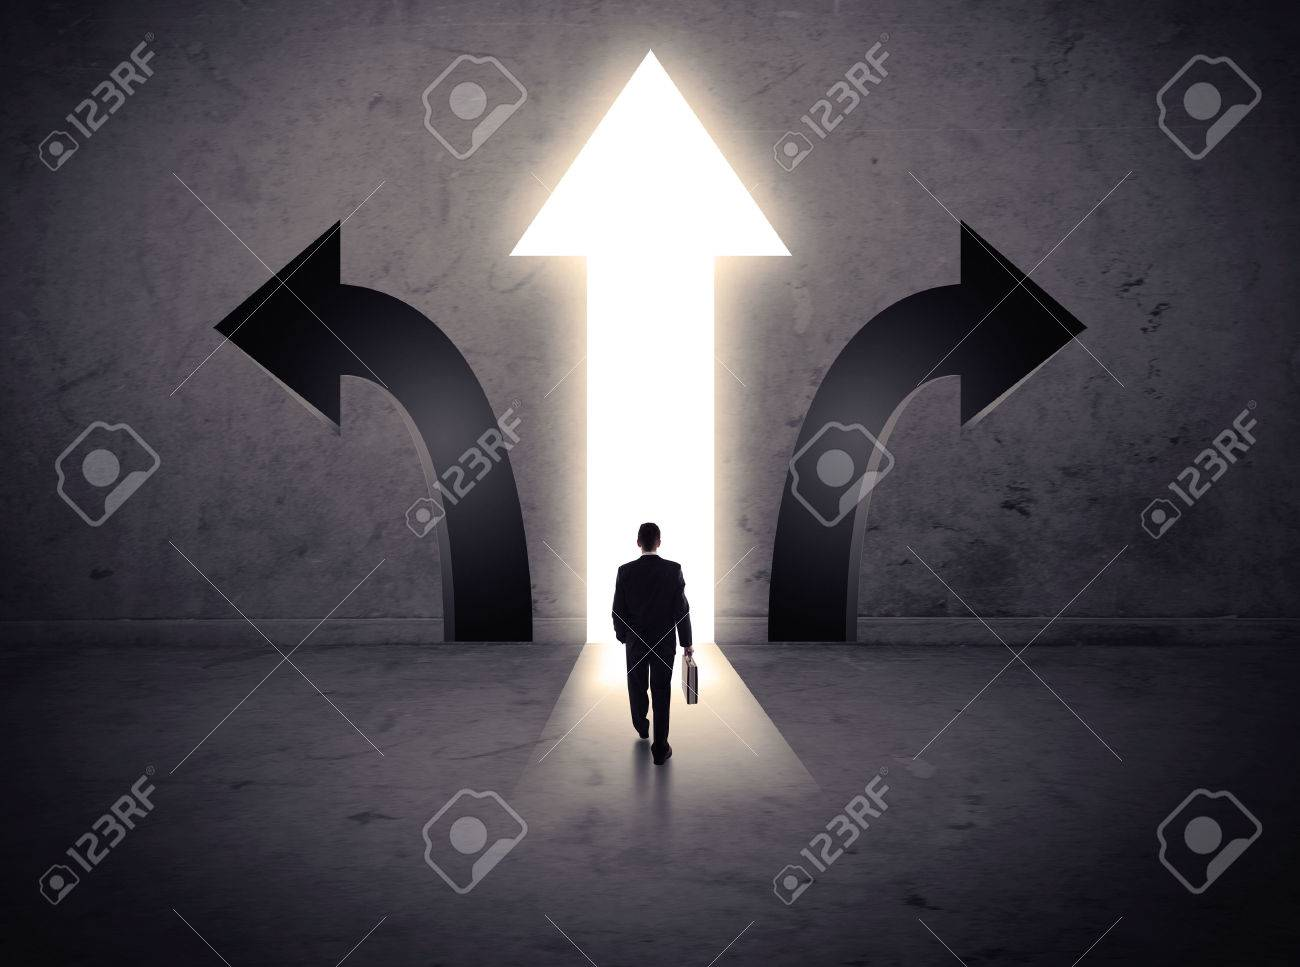 A businessman in doubt, having to choose between three different choices indicated by arrows pointing in opposite direction concept Stock Photo - 54828136